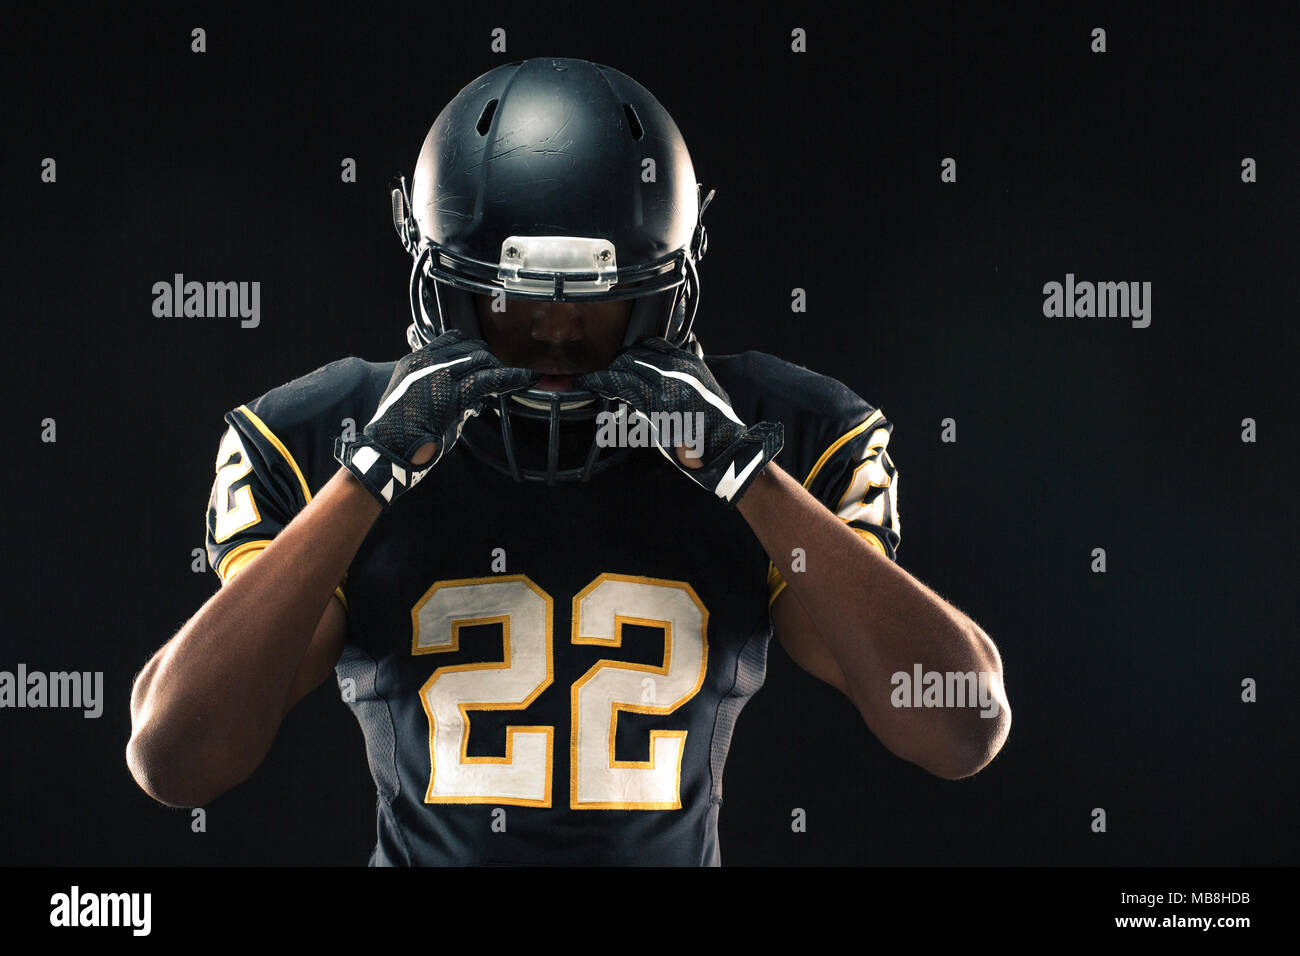 African American football player. - Stock Image